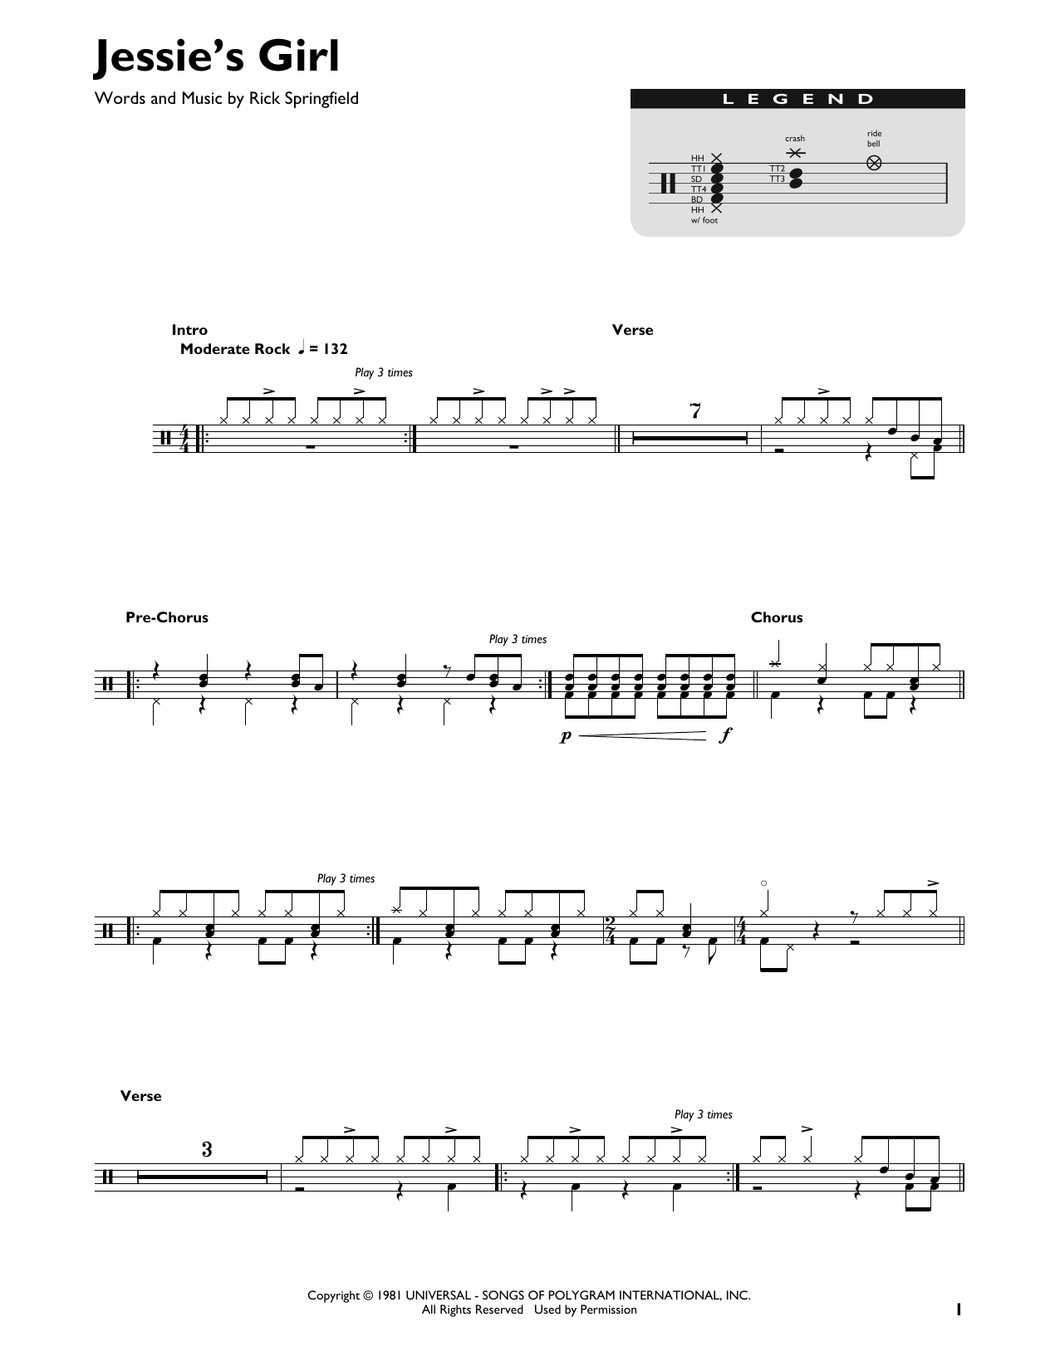 Jessie's Girl - Rick Springfield - Full Drum Transcription / Drum Sheet Music - SheetMusicDirect DT